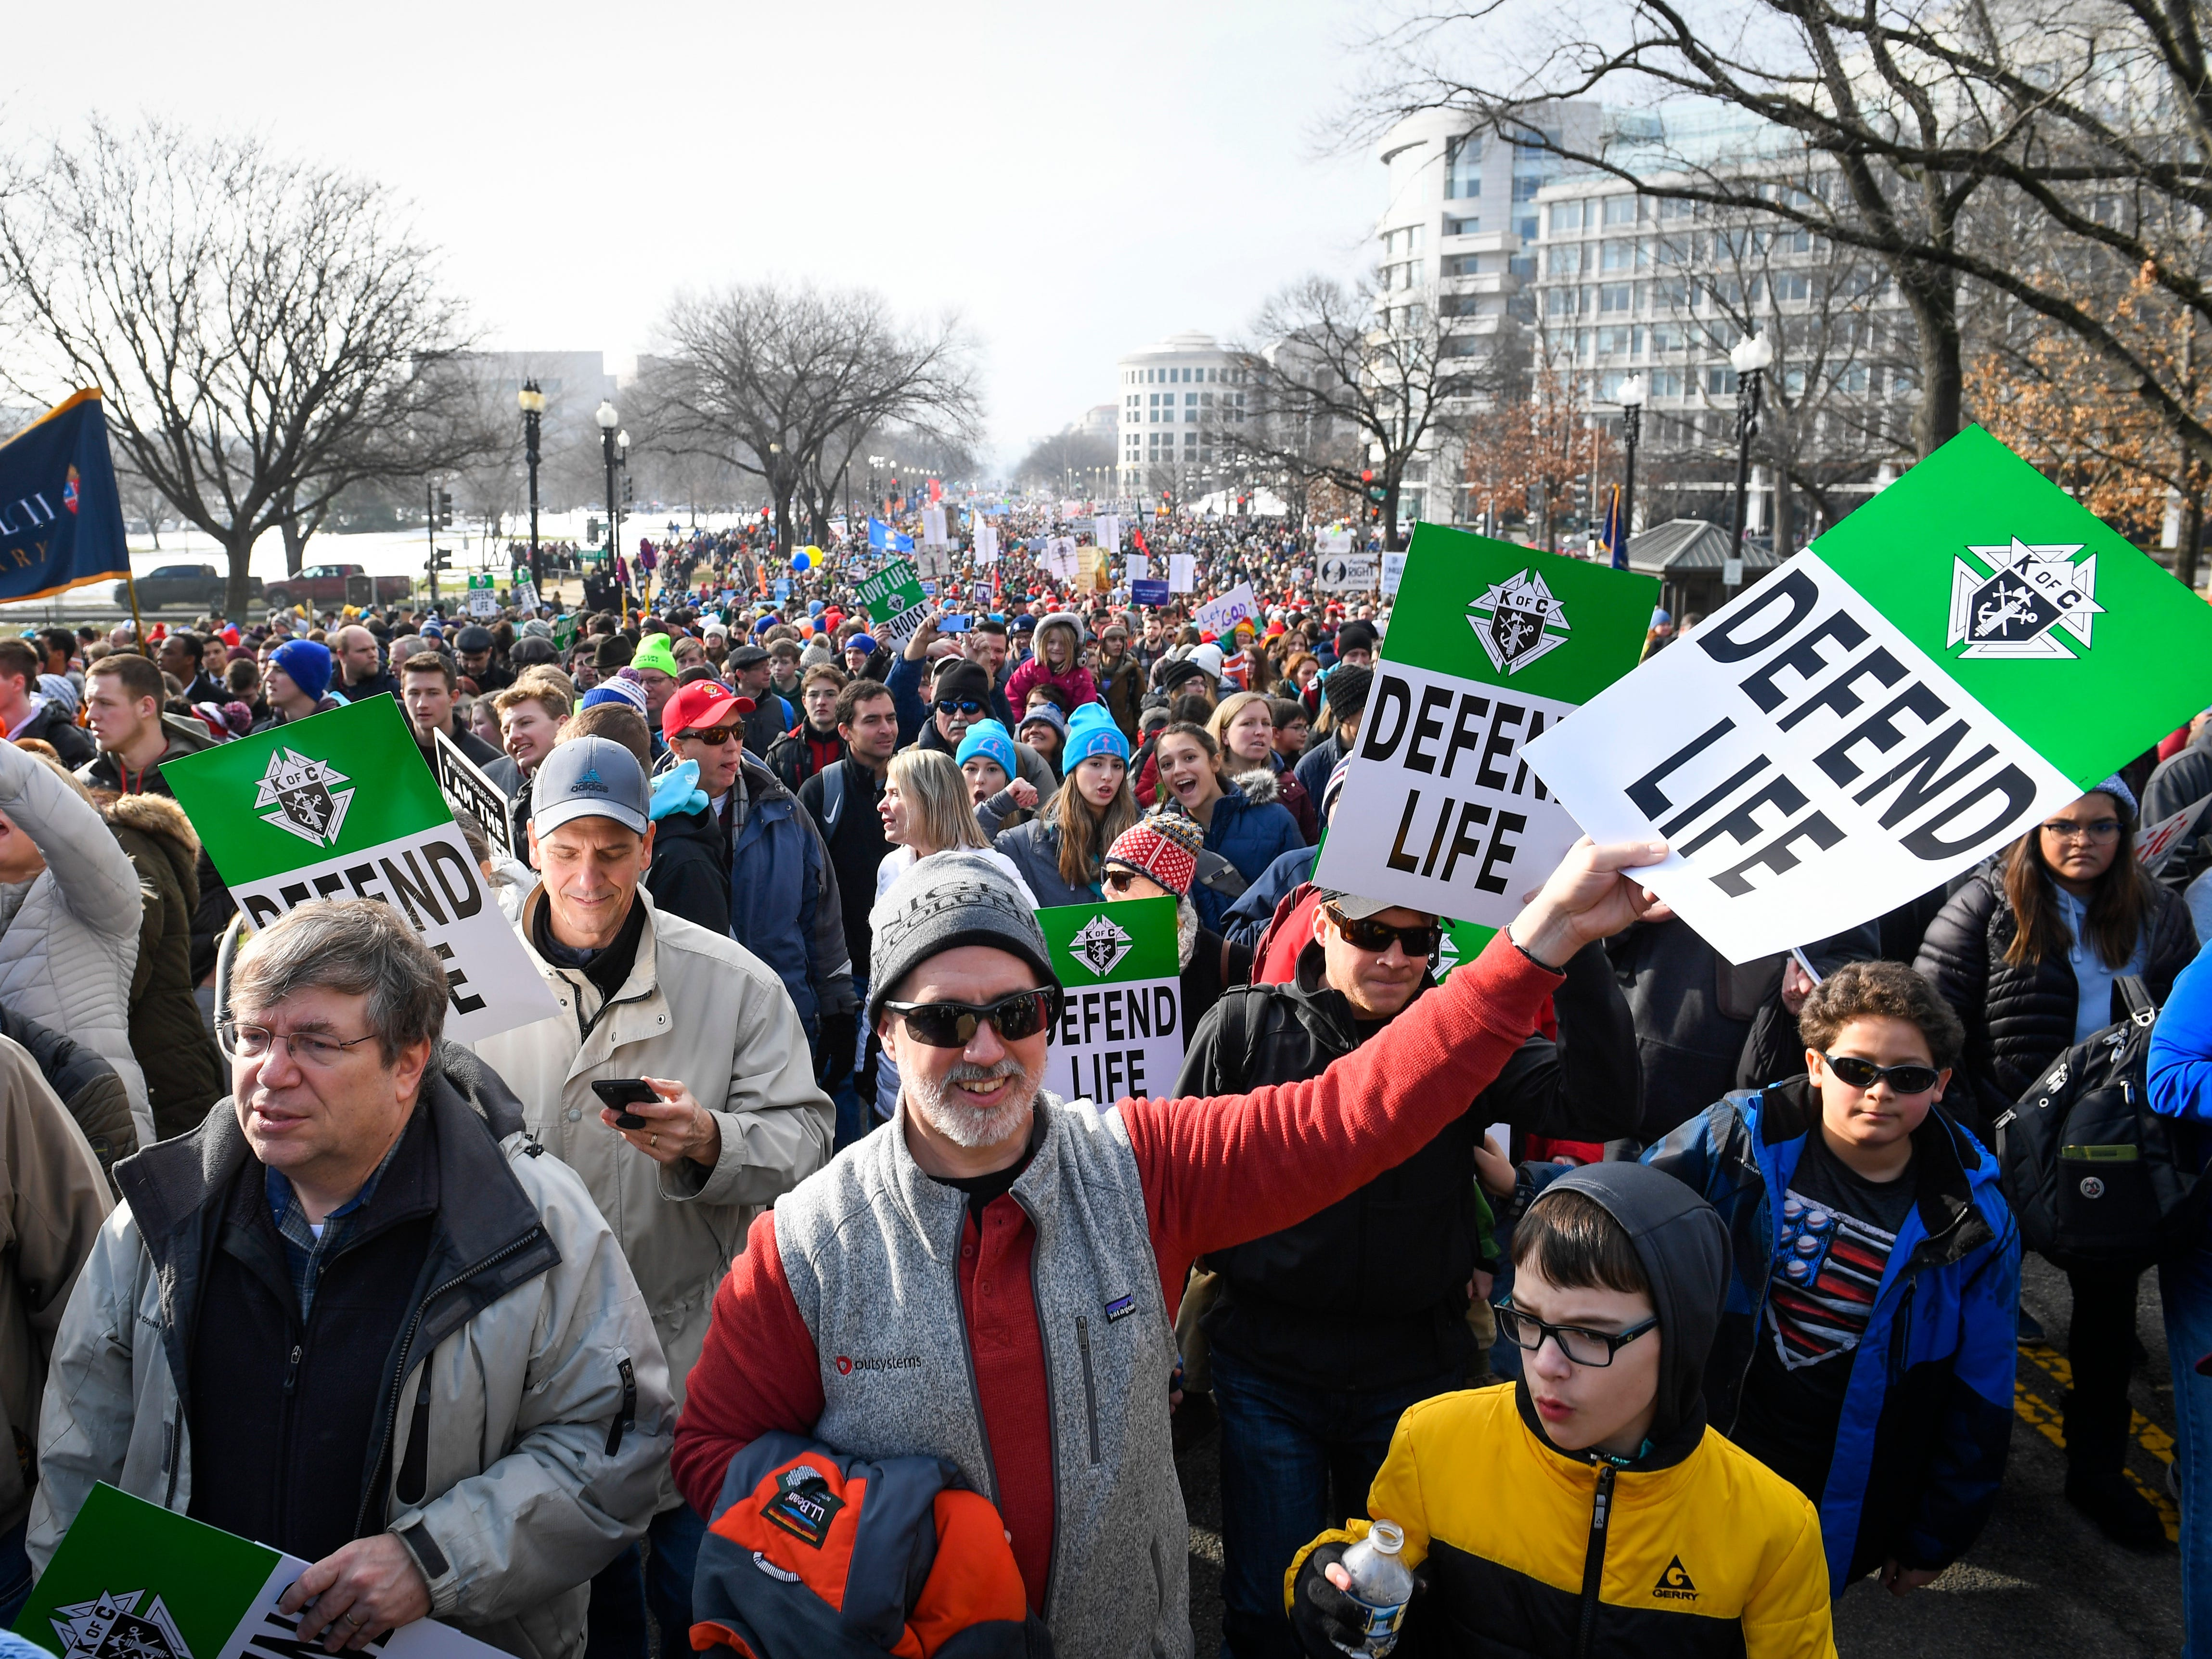 Rep. Daniel Lipinski, D-Ill., who is one of the only anti-abortion Democrats in the House, also addressed the morning rally. Ben Shapiro, a popular conservative commentator, was the featured speaker.